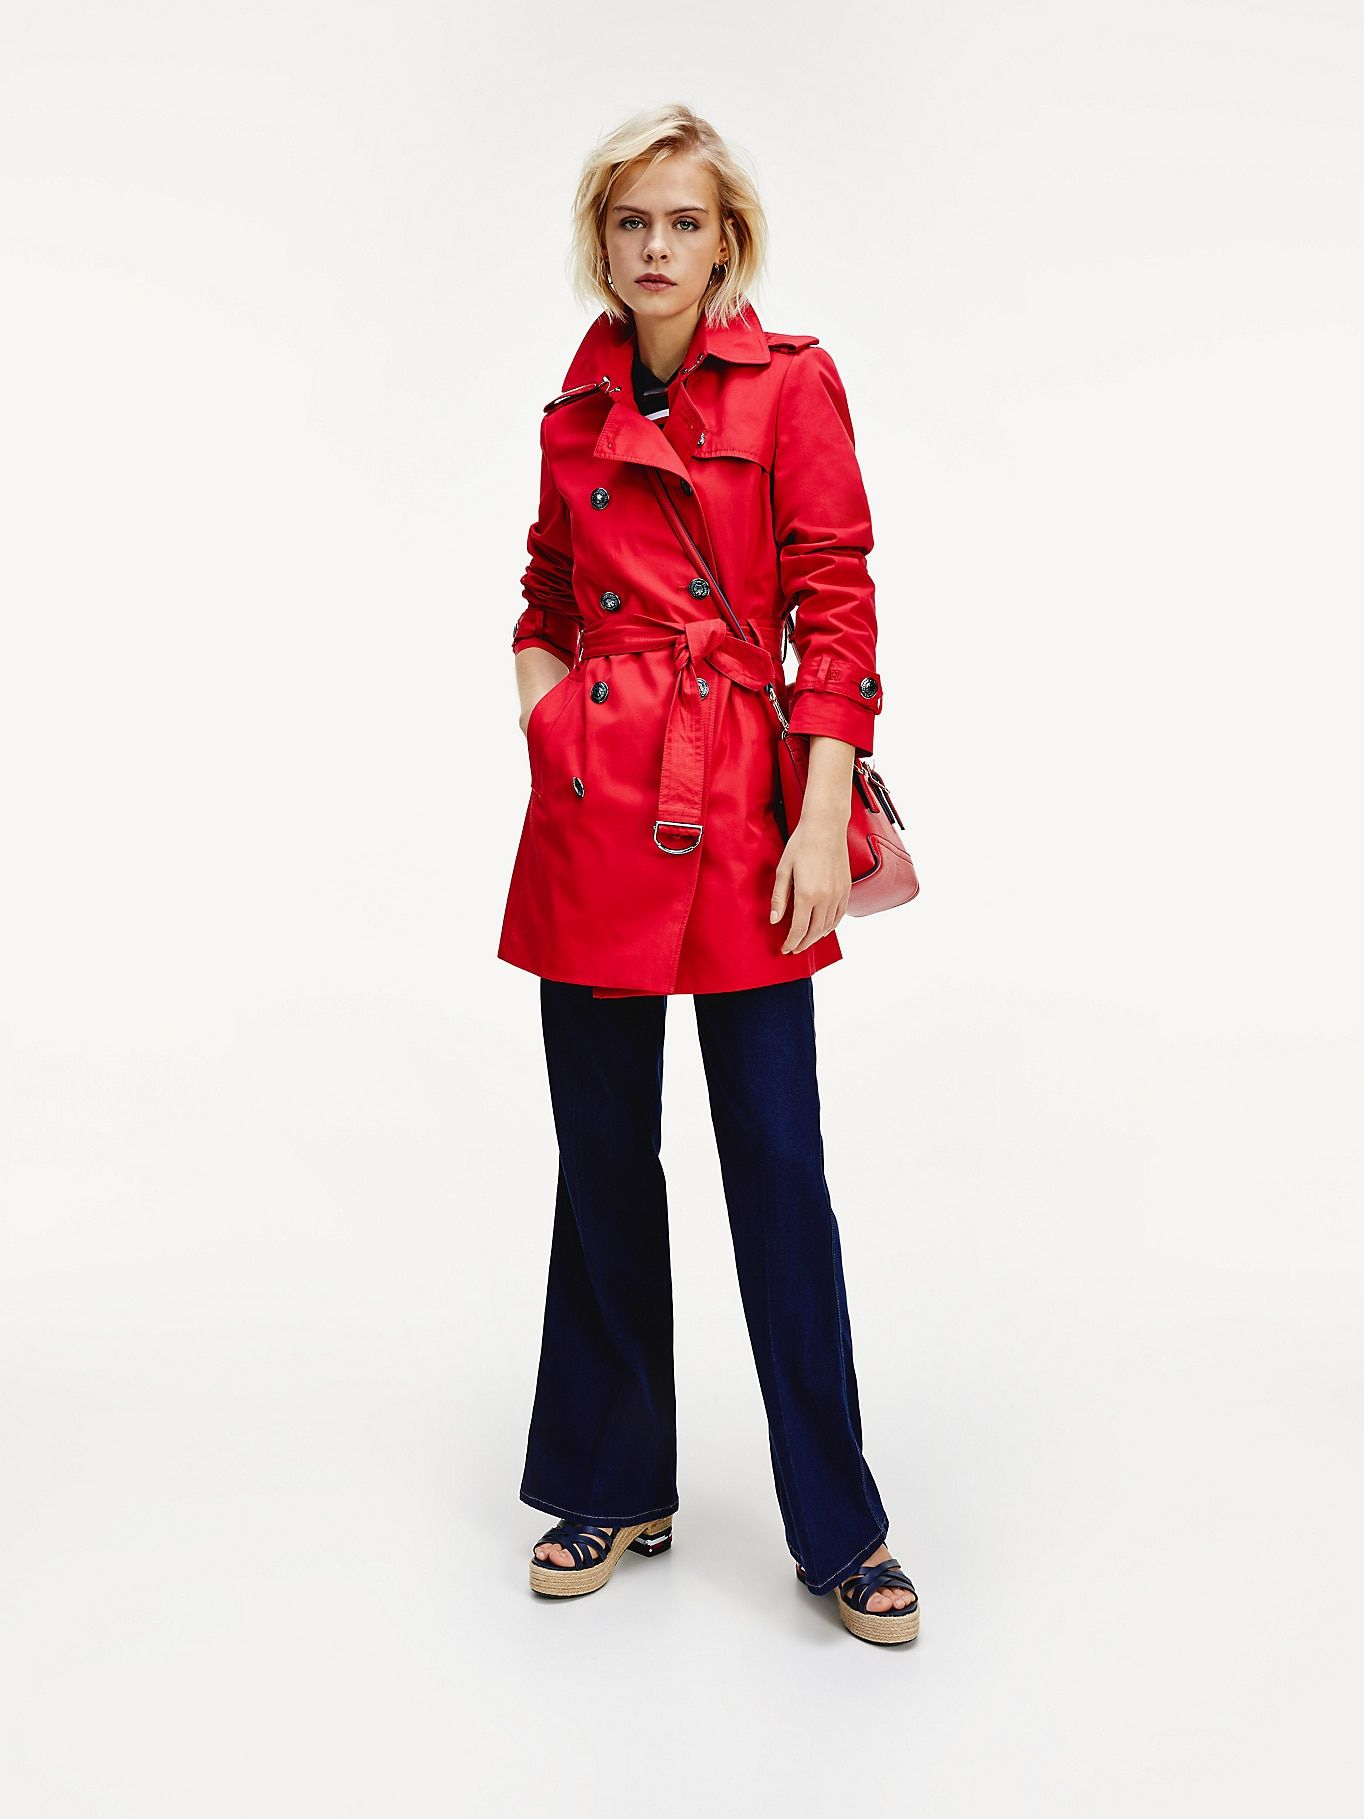 Double Breasted Utility Trench Coat Red Tommy Hilfiger Outerwear Jackets Women S Coats Jackets Tommy Hilfiger [ 1819 x 1364 Pixel ]